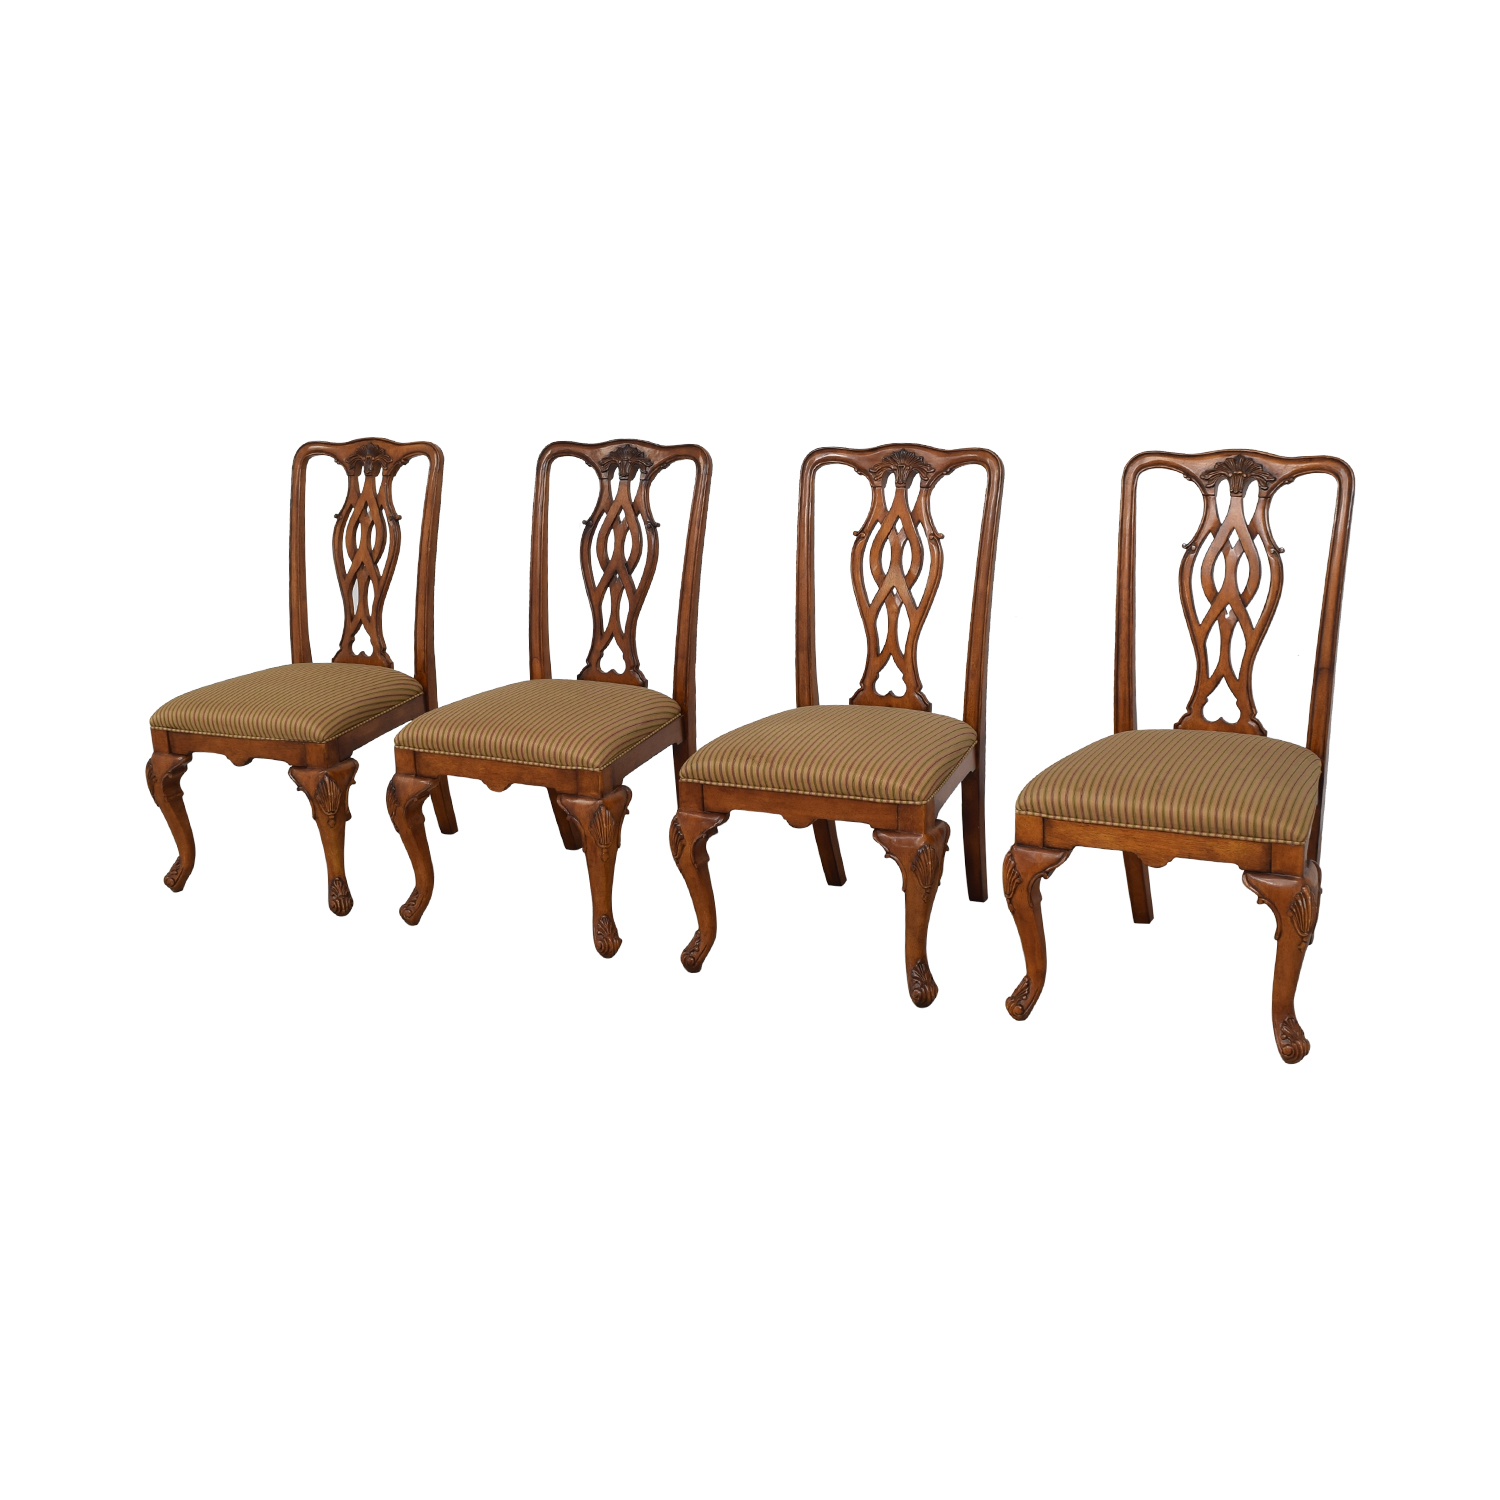 Drexel Heritage Drexel Heritage Dining Chairs discount